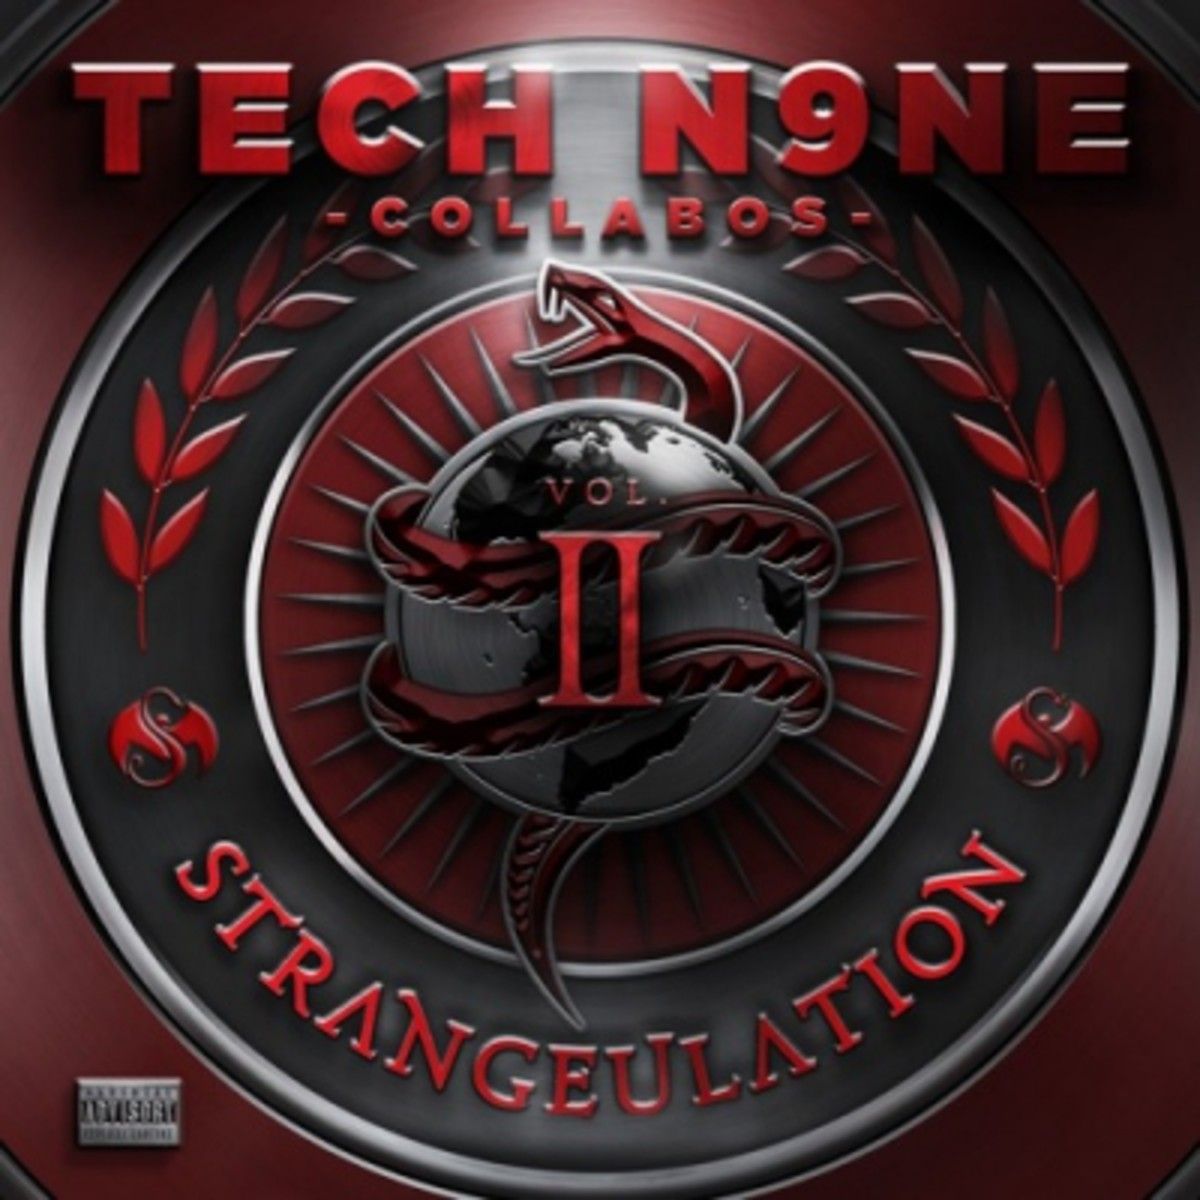 tech-n9ne-collabos-strangeulation-2.jpg